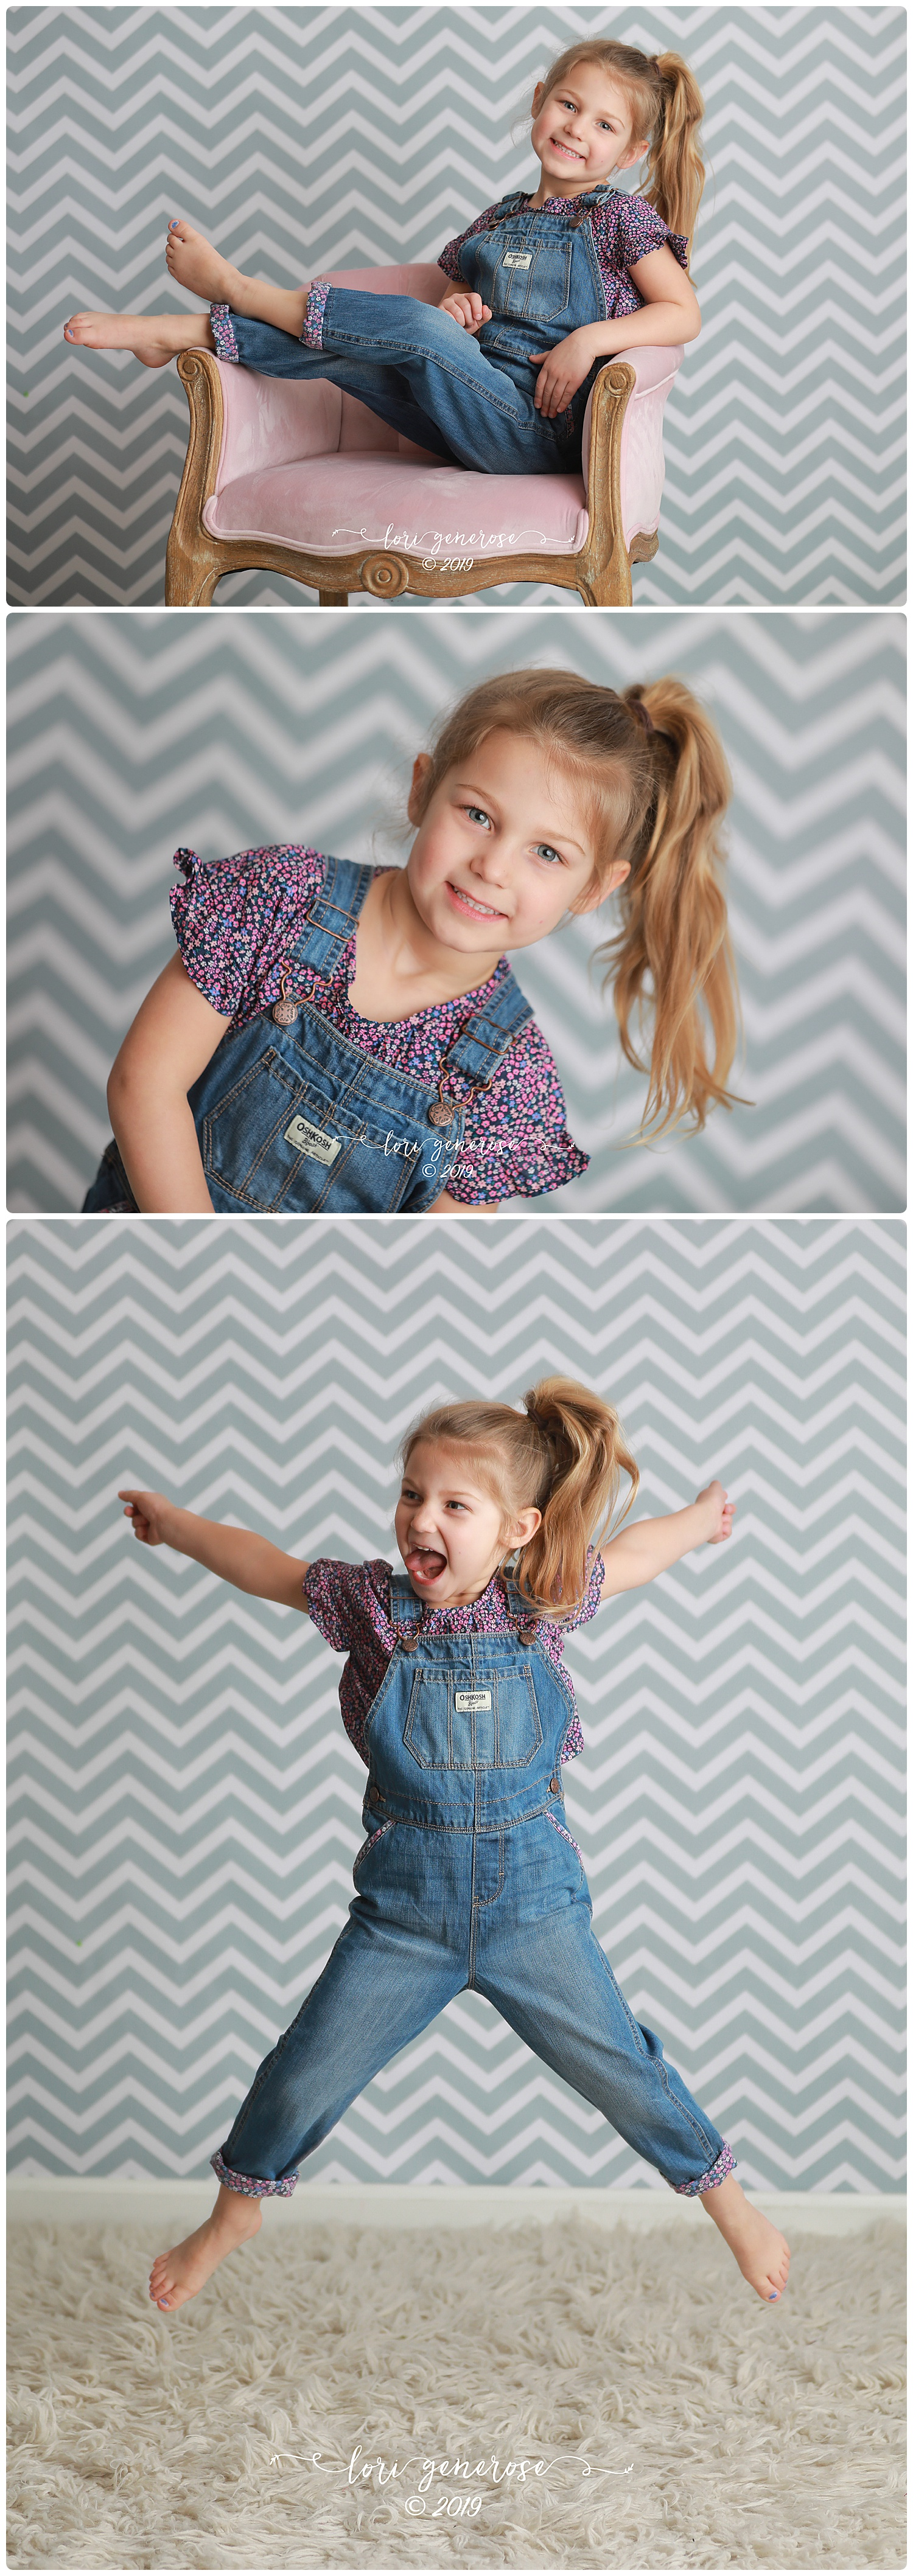 Four year olds are some of the coolest humans on the planet! Kylie is no exception to my theory 💜 We had SOOO much fun together... there was a lot of jumping and dancing involved! She is just gorgeous and can pose with the best of them! Happy four years silly girl!